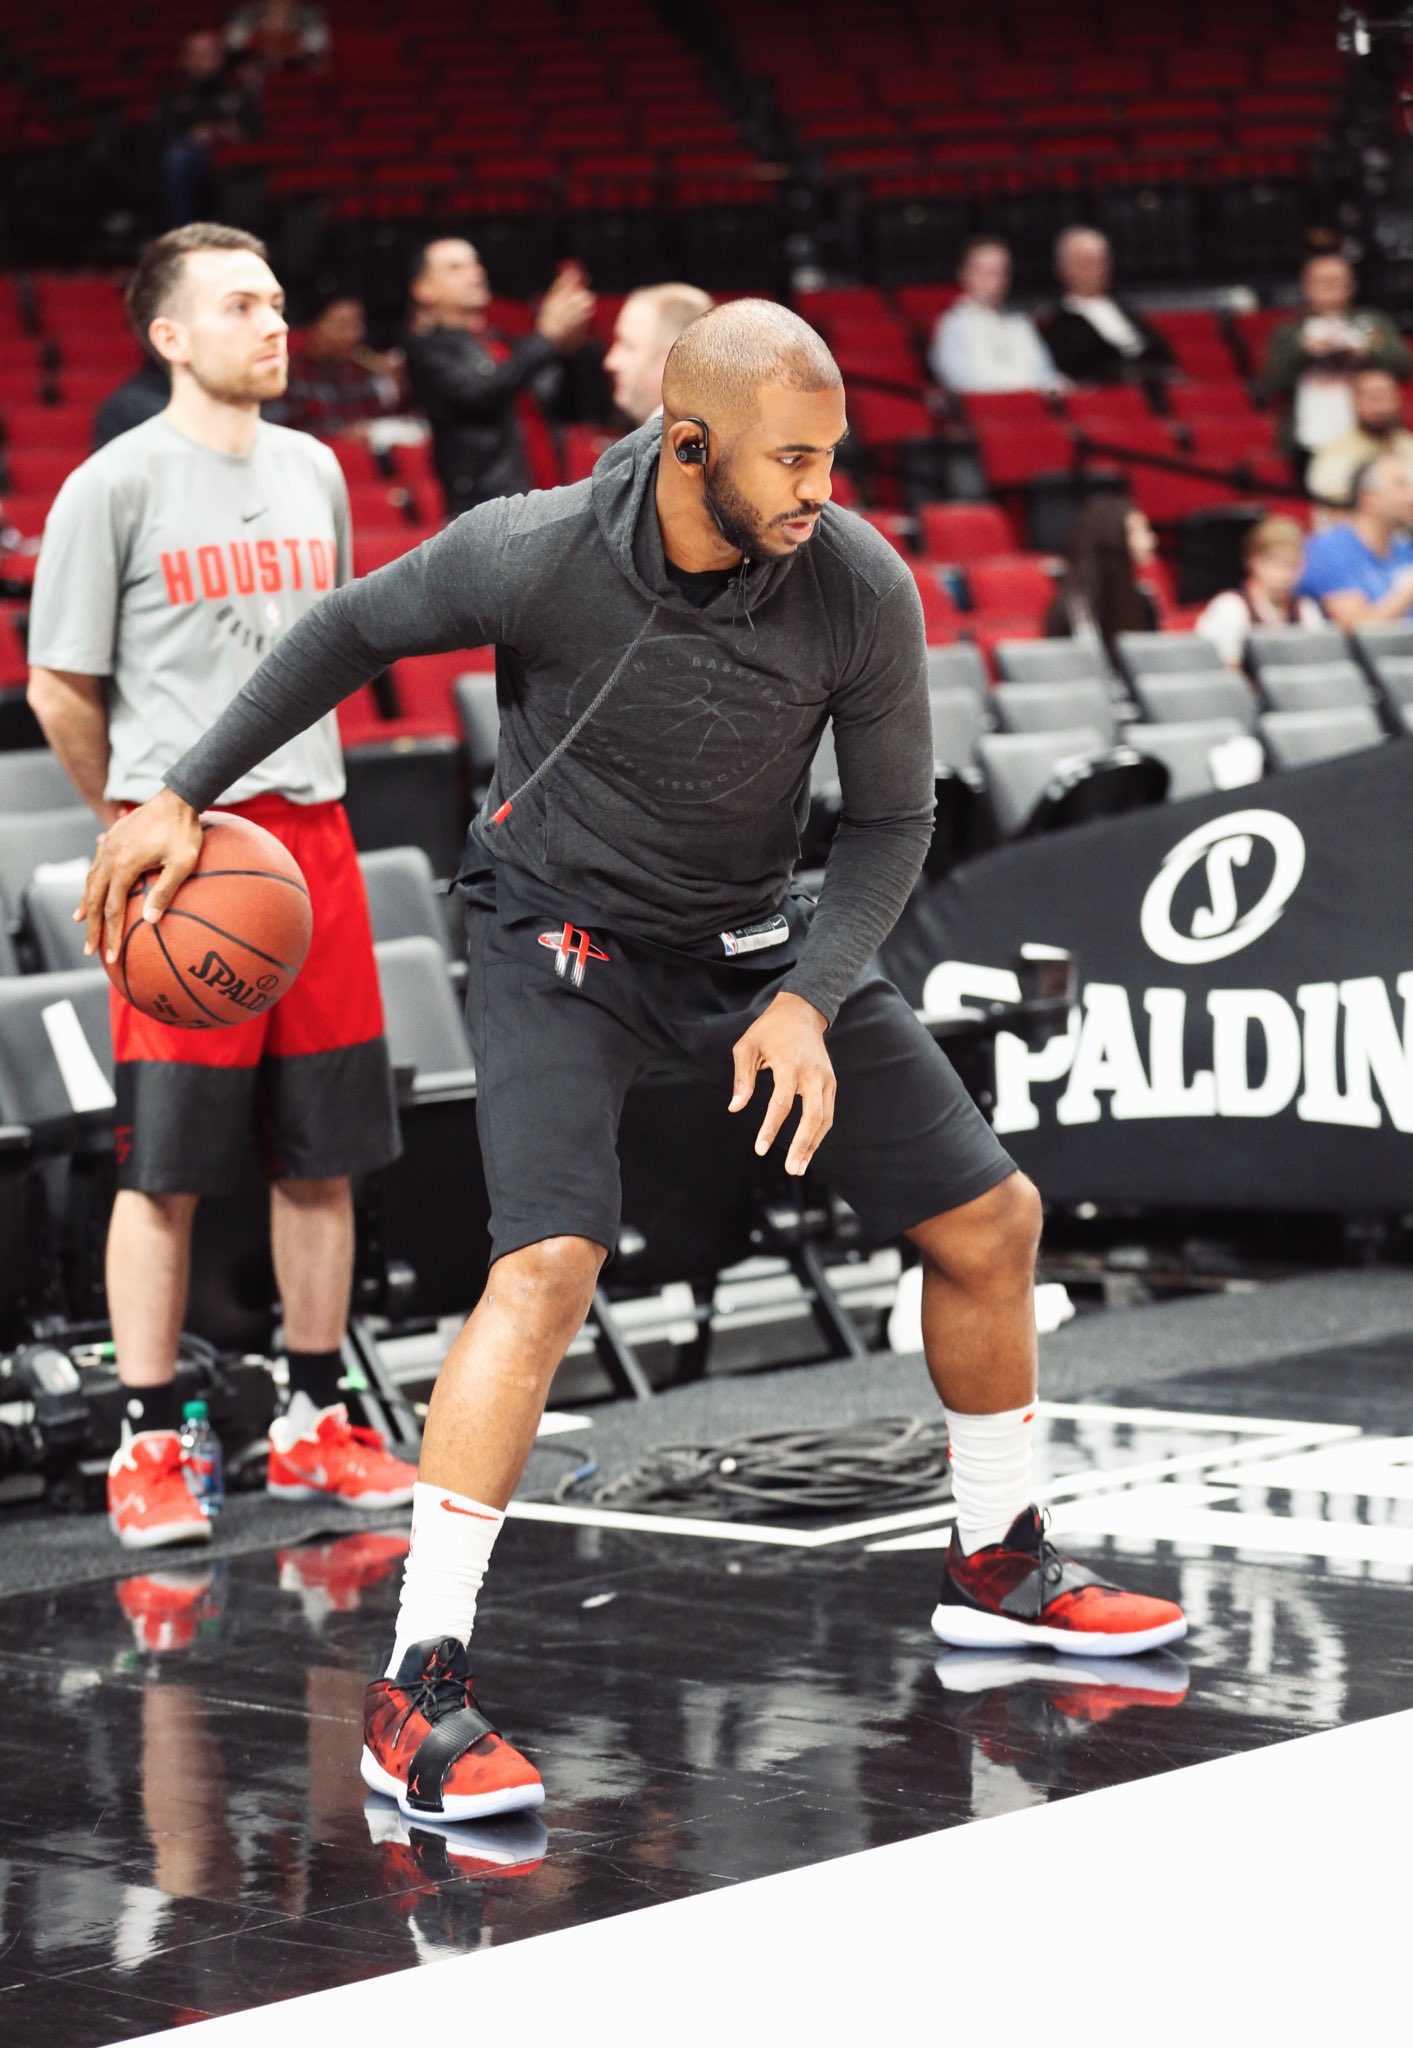 .@CP3 getting ready in Portland with some new heat ➡️ Rocket Fuel CP3 XI https://t.co/pUPpYWsxxh